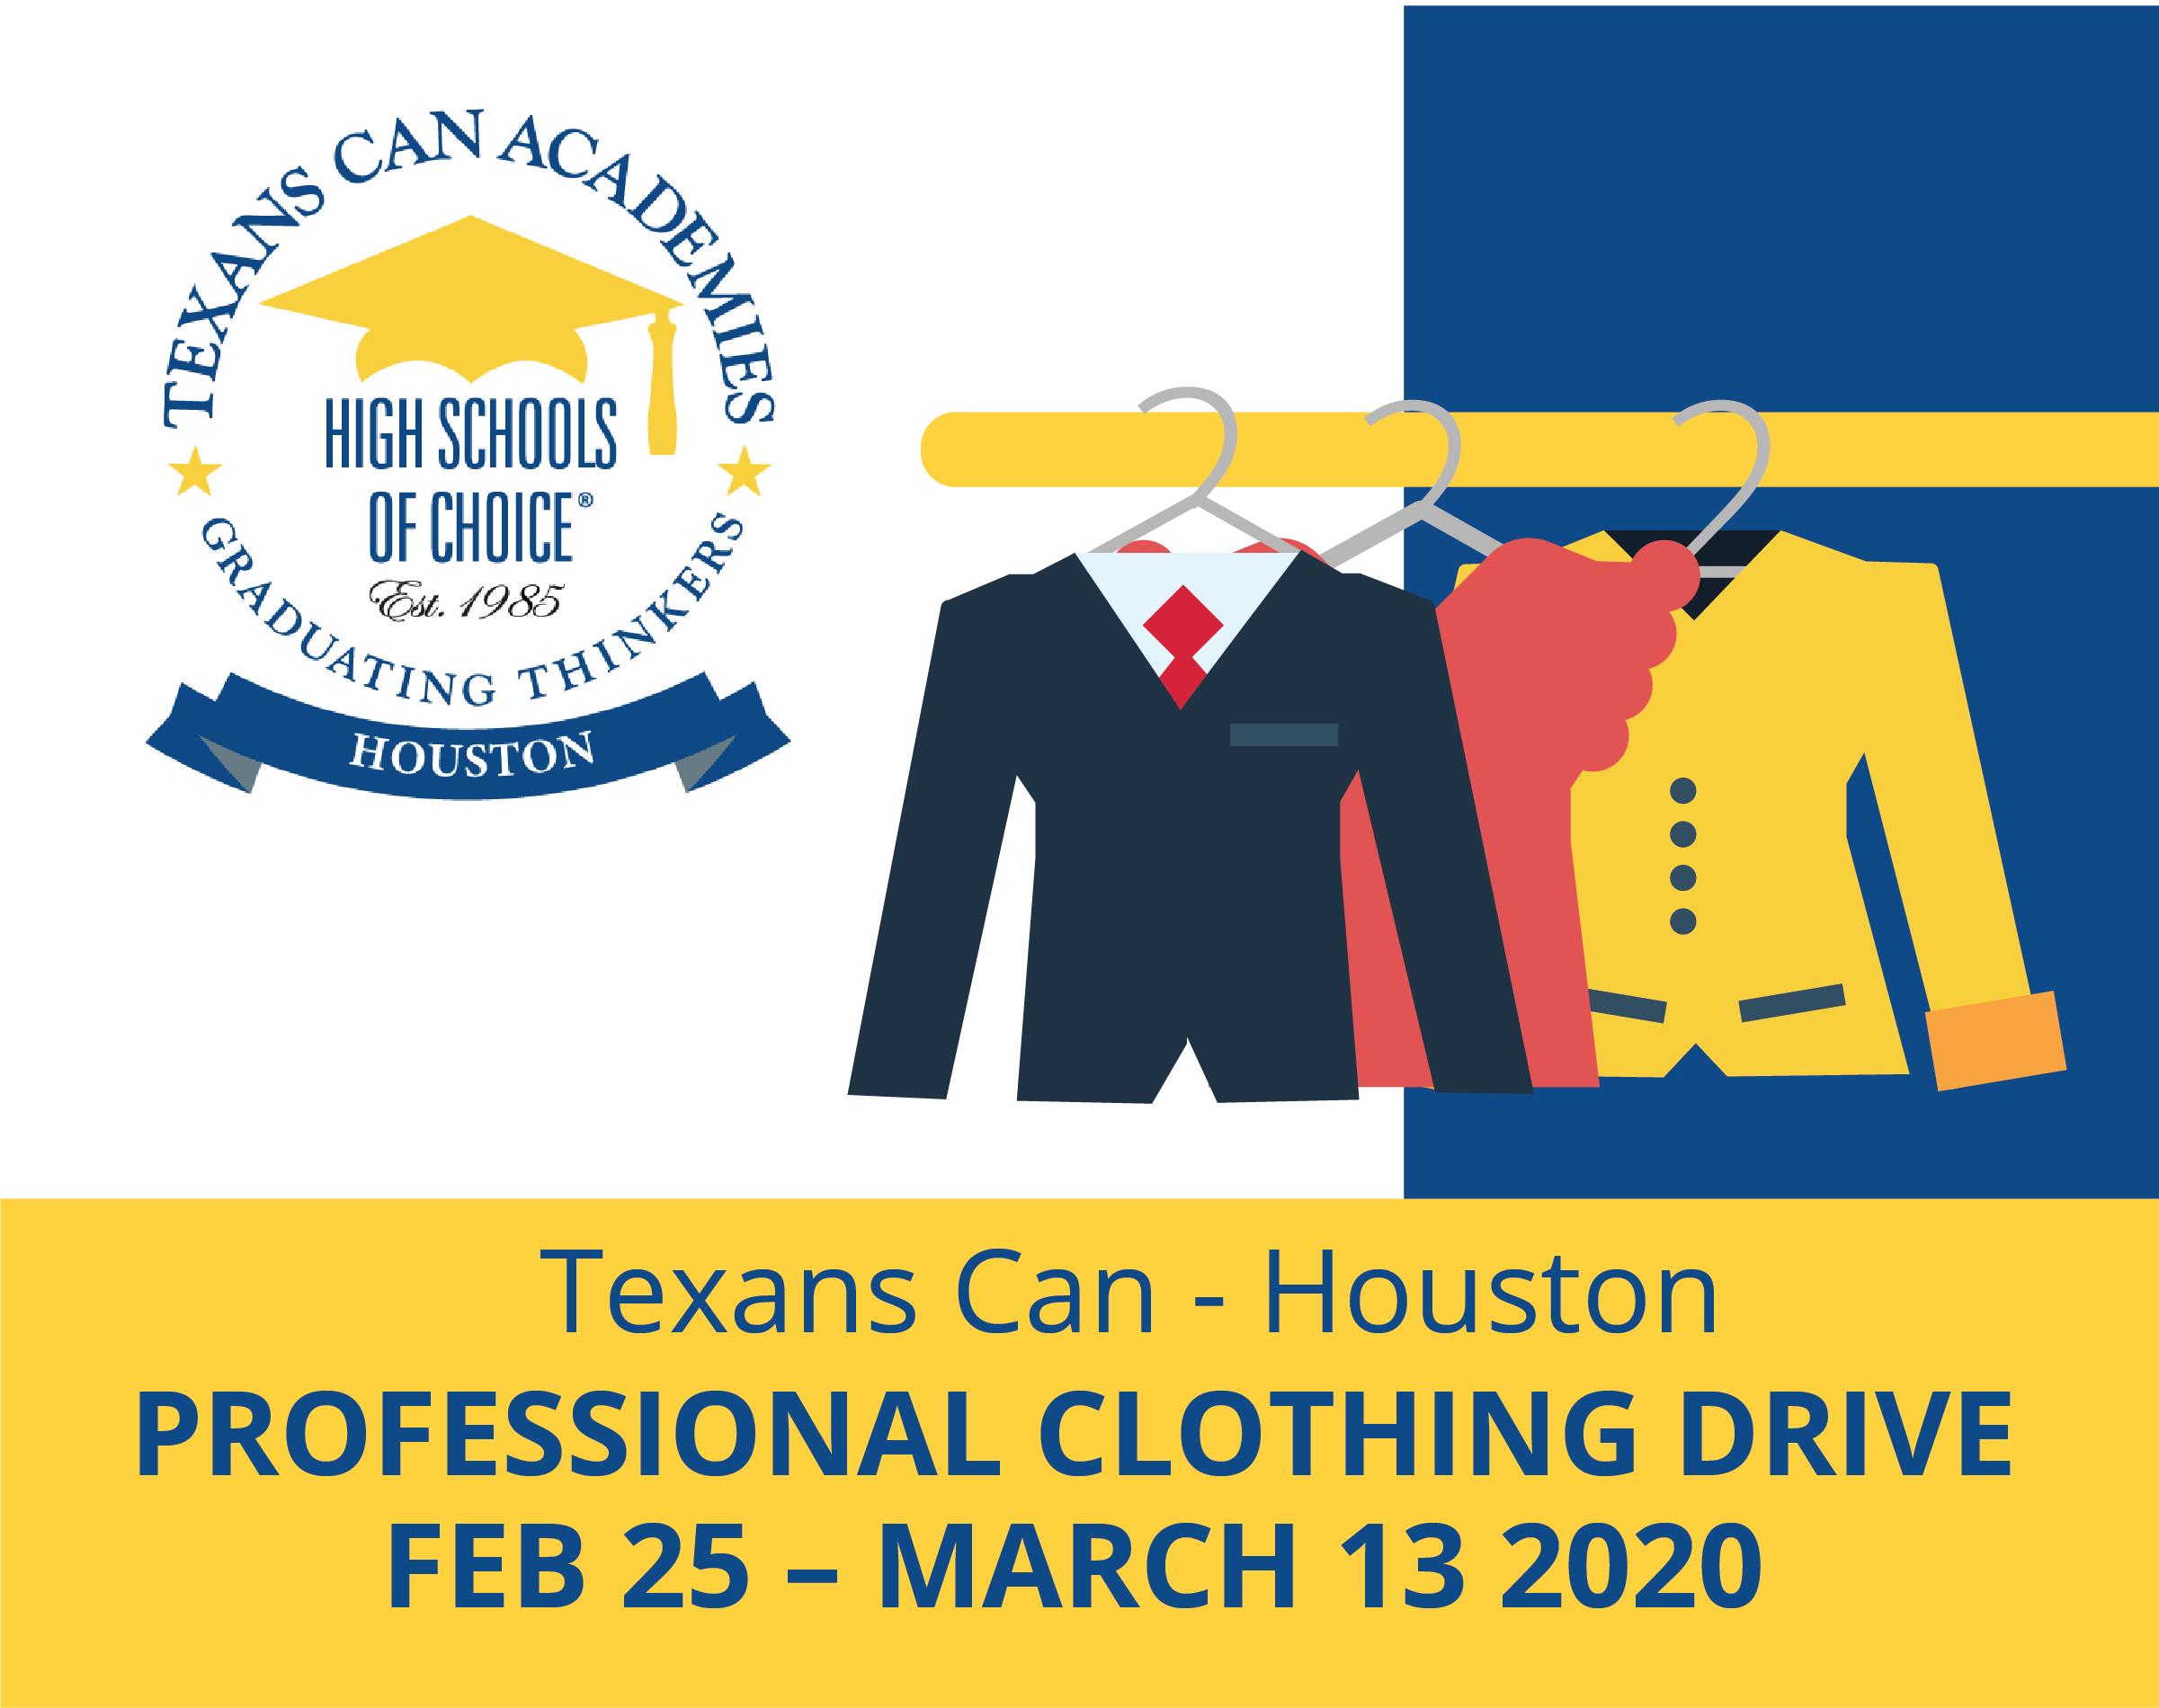 Texans Can - Houston: Professional Clothing Drive